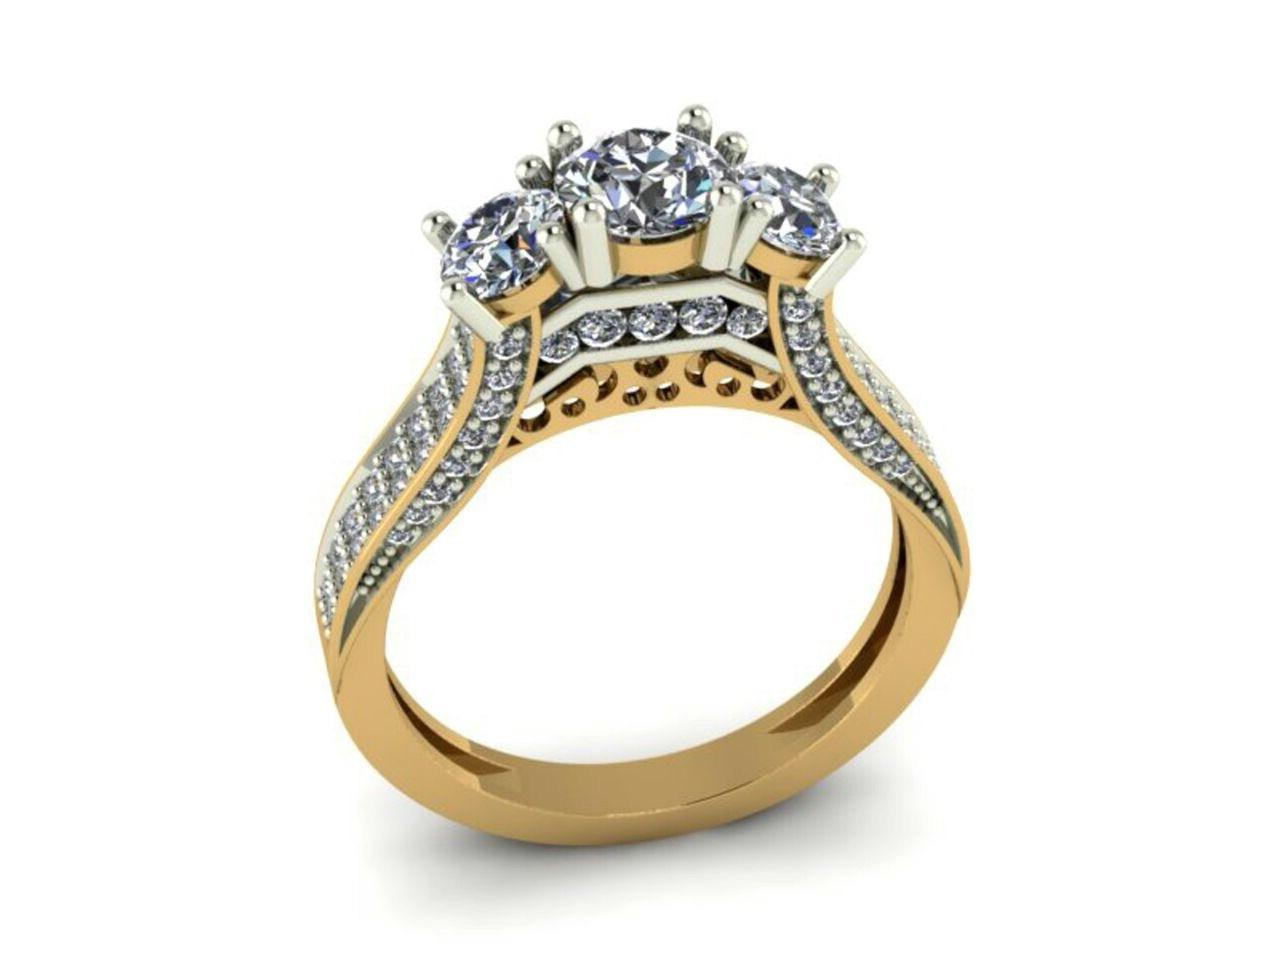 ring rings engagement full belfast stylish attachment wedding view diamond gallery lovely of